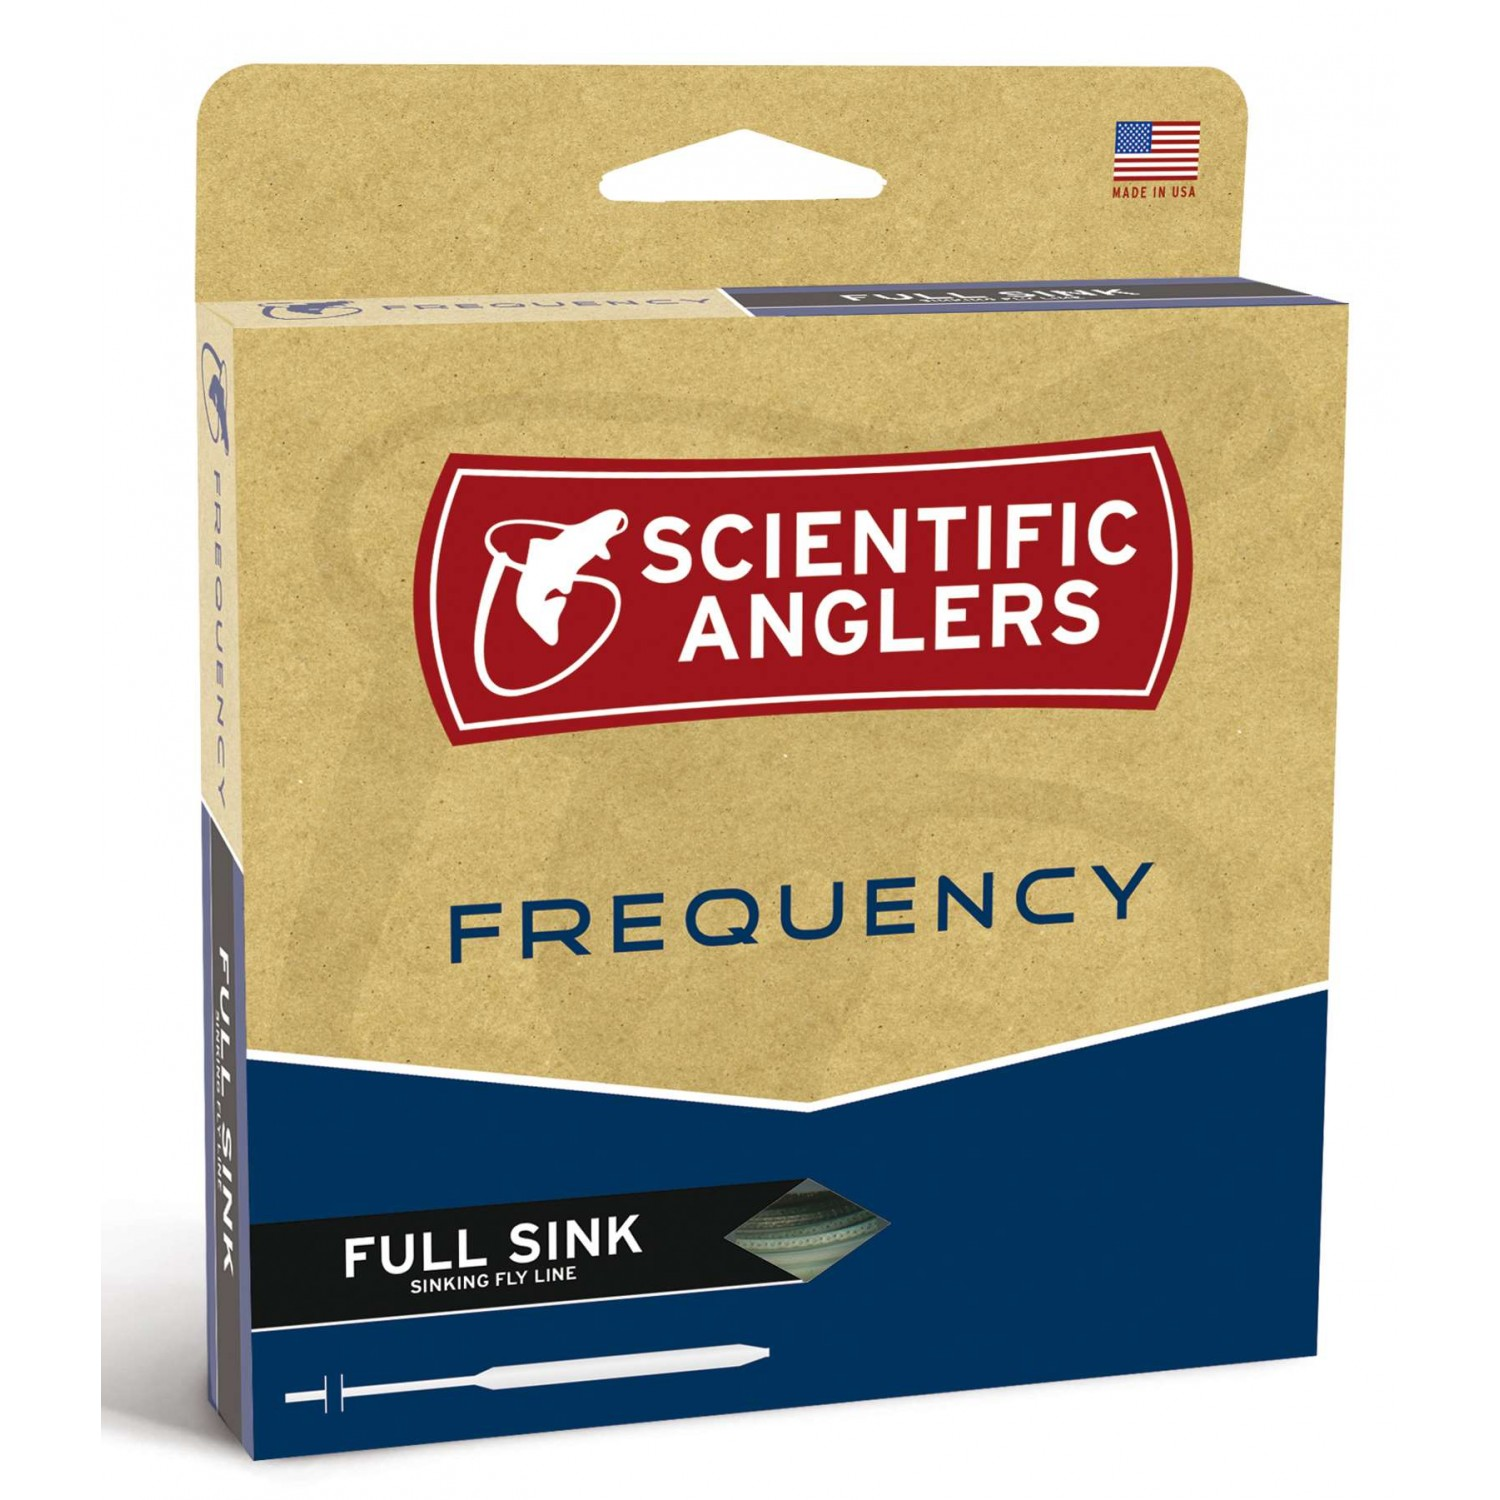 Scientific Anglers - Frequency Full Sink. 6 Dk.Gray WF-S